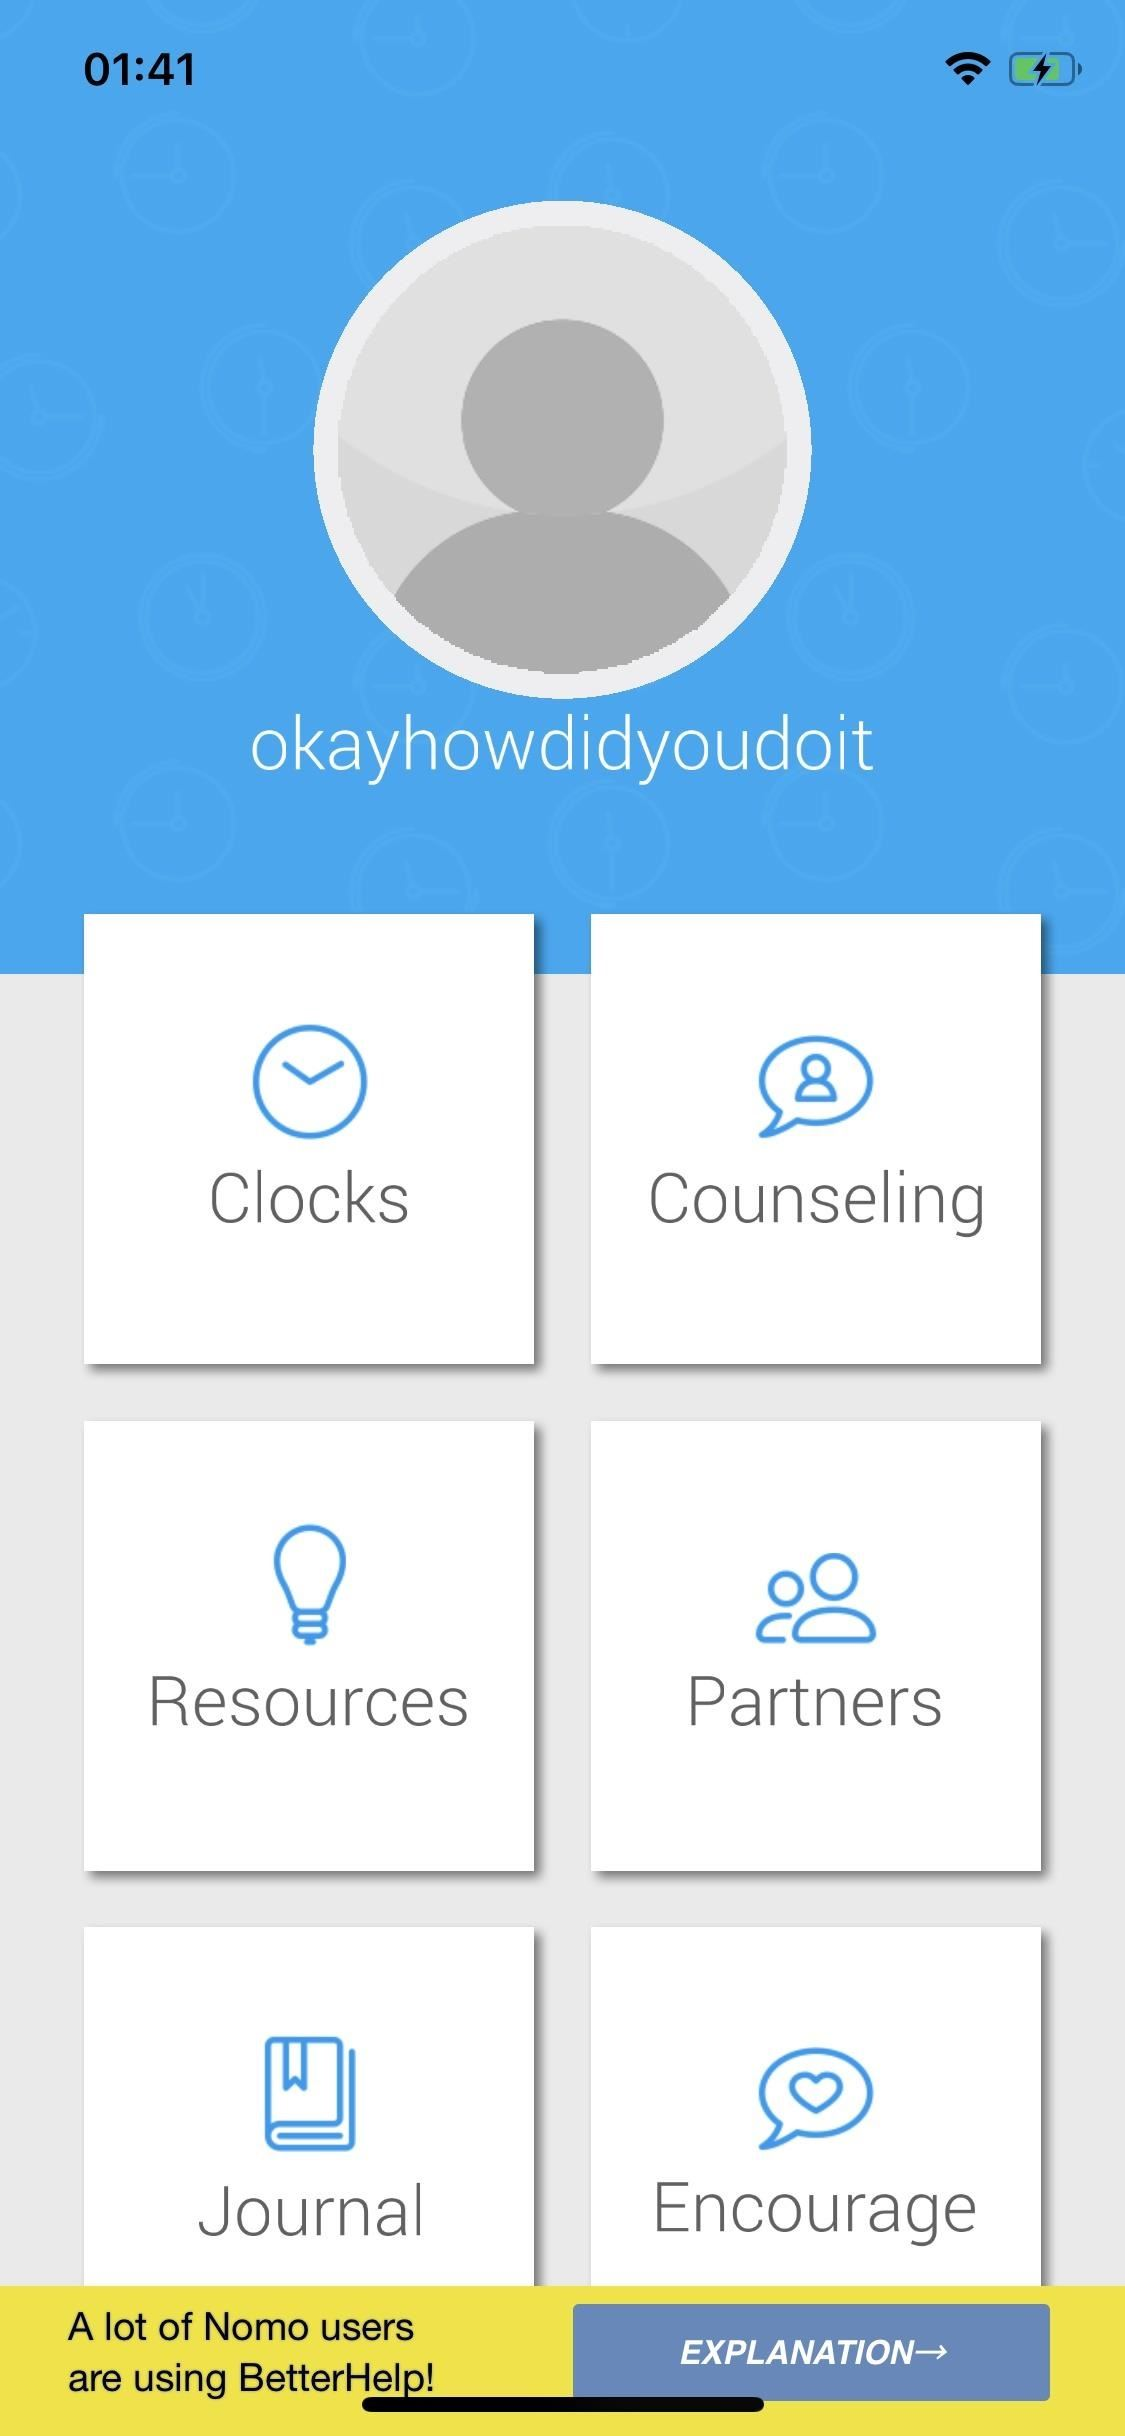 10 Best Apps for Improving & Maintaining Your Mental Health